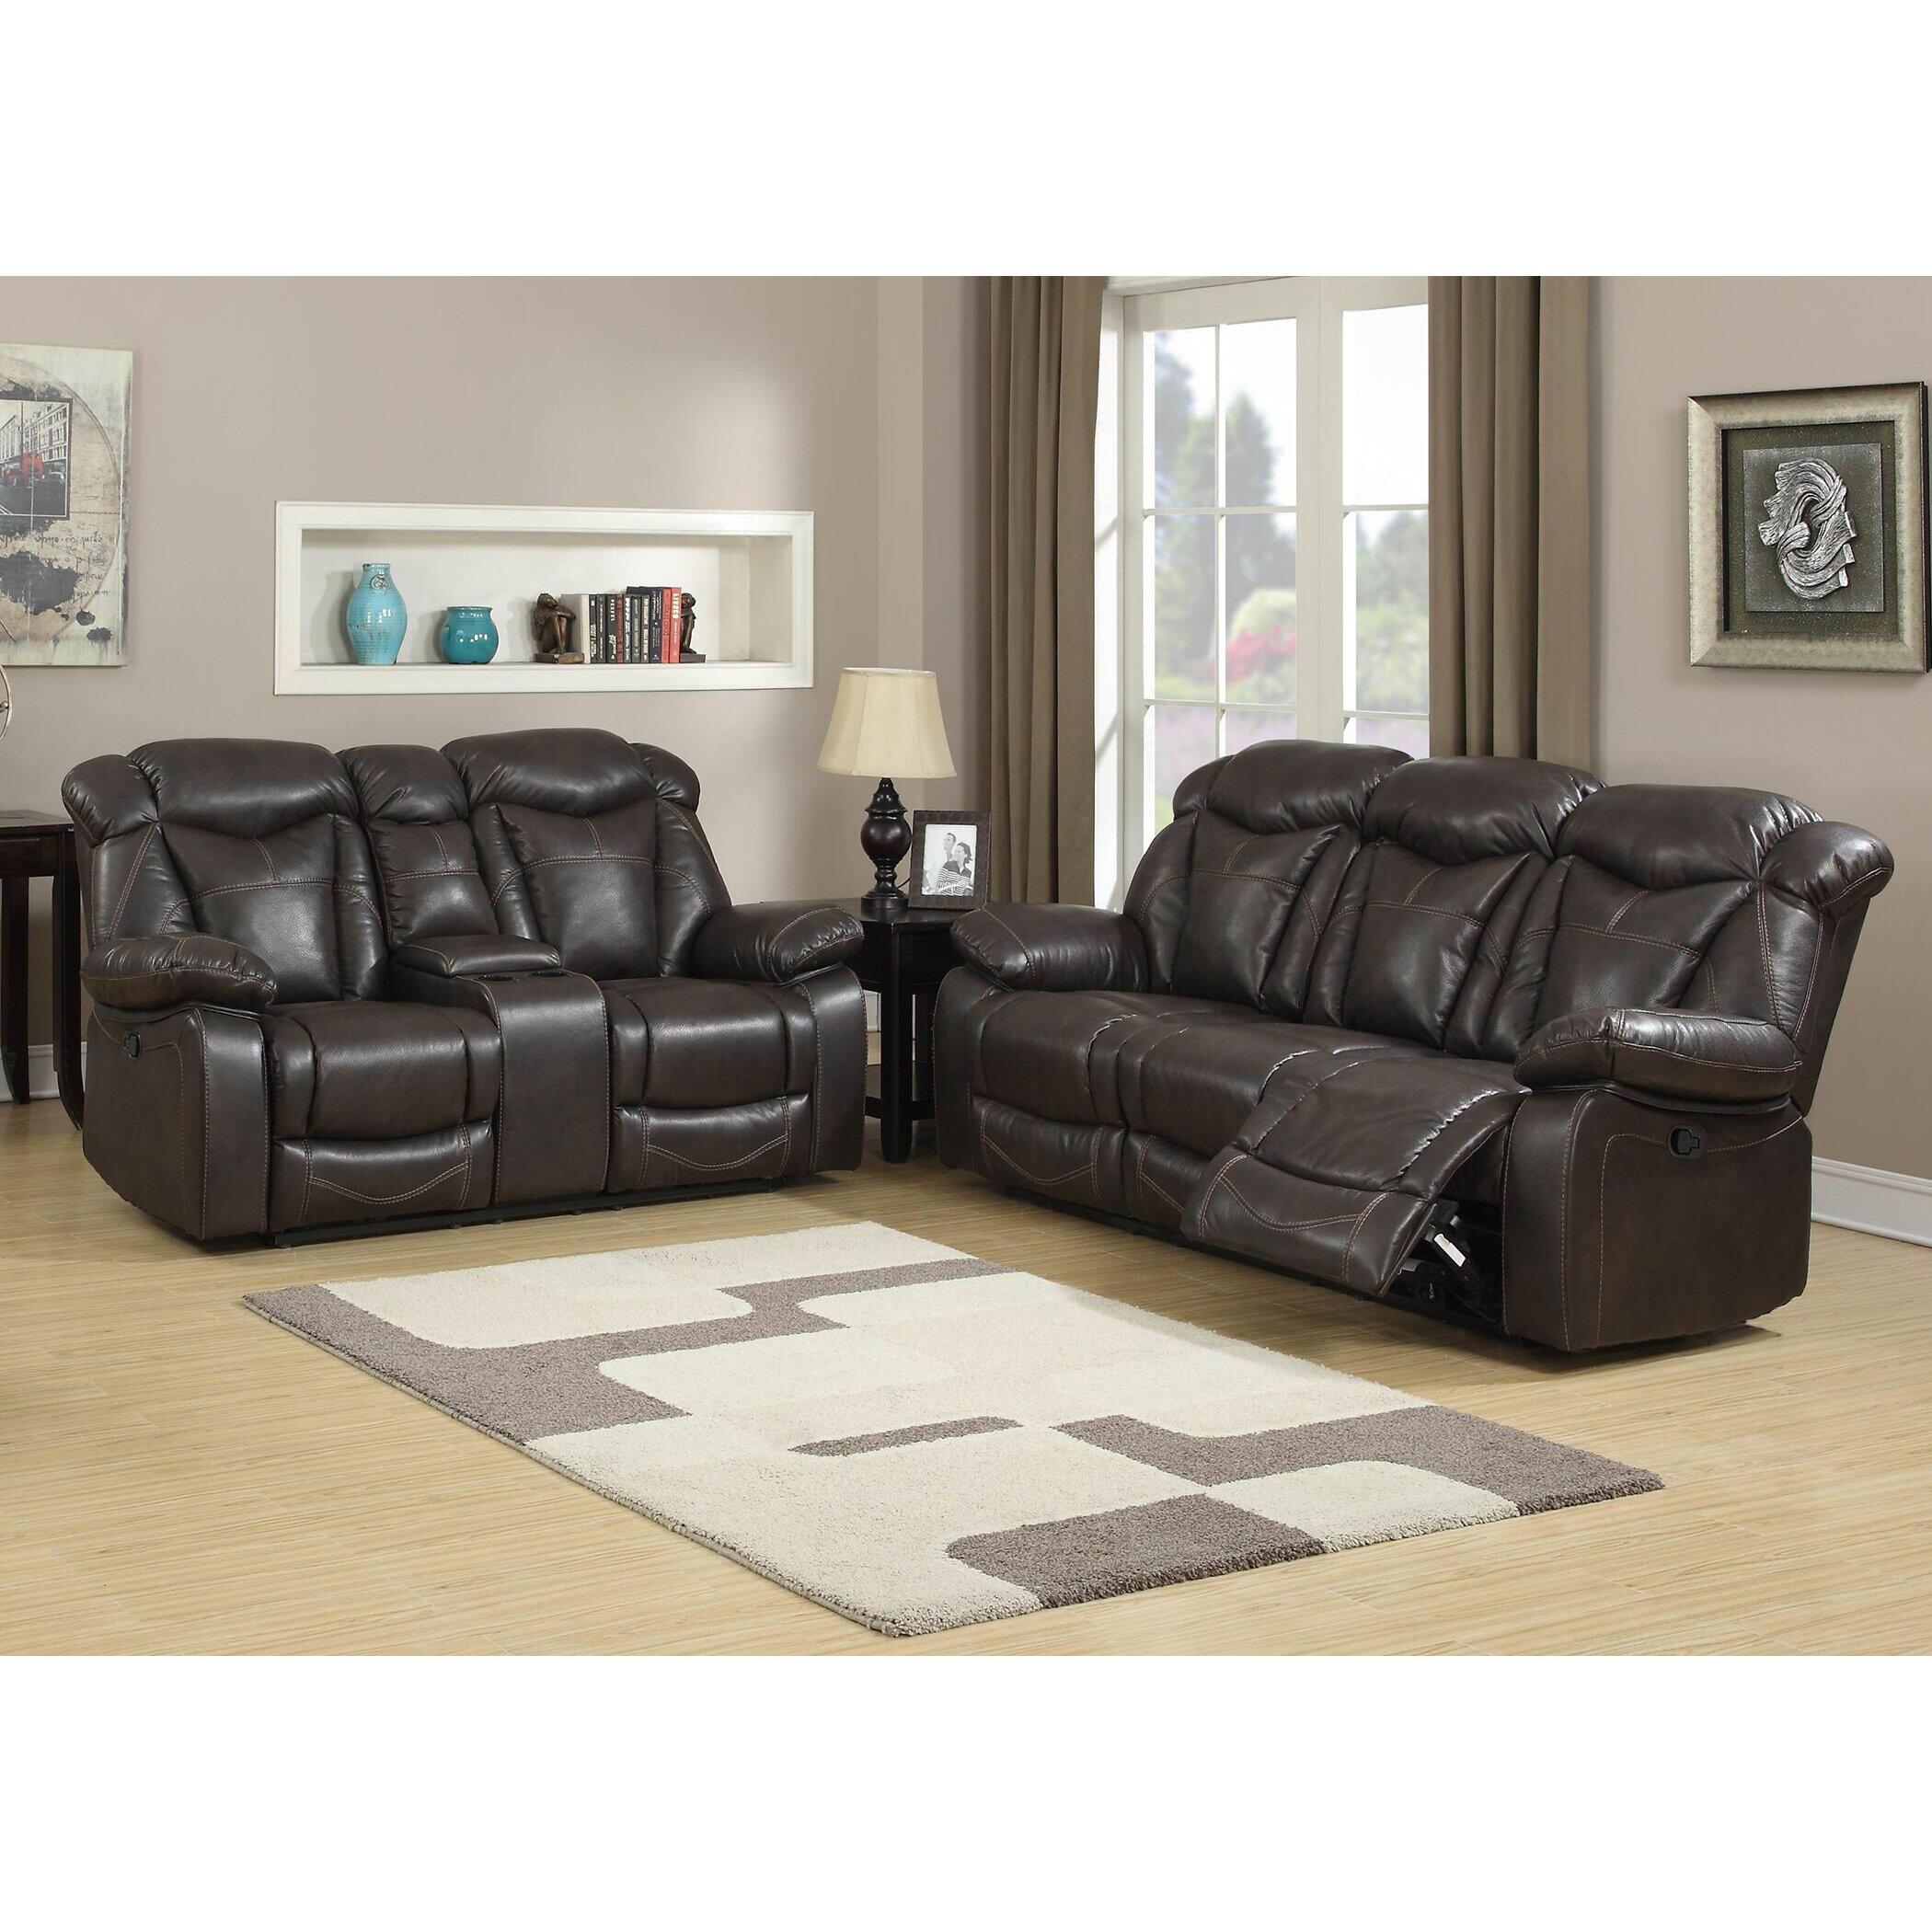 Ac pacific otto contemporary 2 piece living room set wayfair for 2 piece furniture set